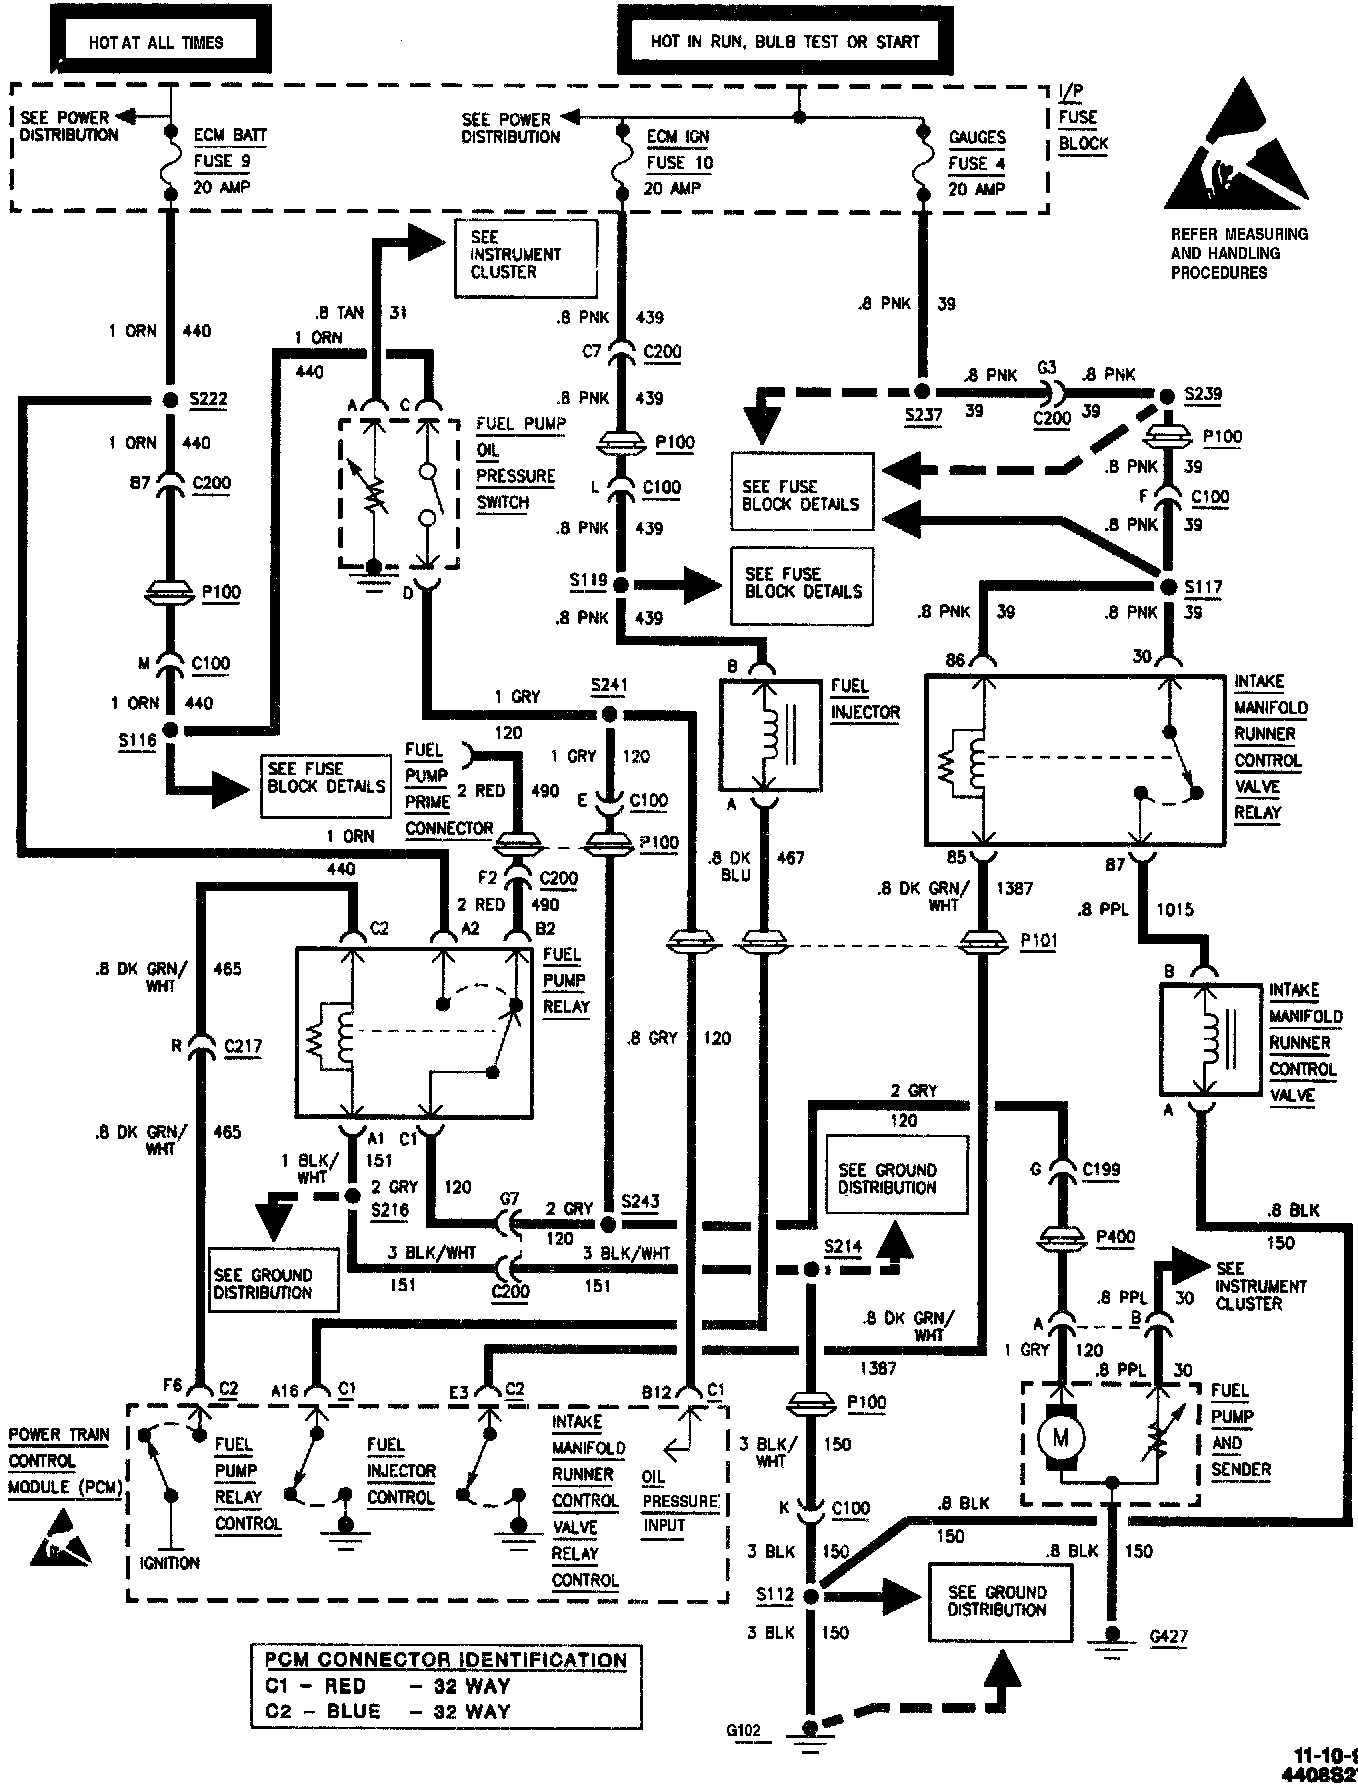 Diagram Of Fuel Pump Wiring Diagrams 96 Evinrude 2005 Chevy Trailblazer Best Site In 2002 Tahoe 25 Hp